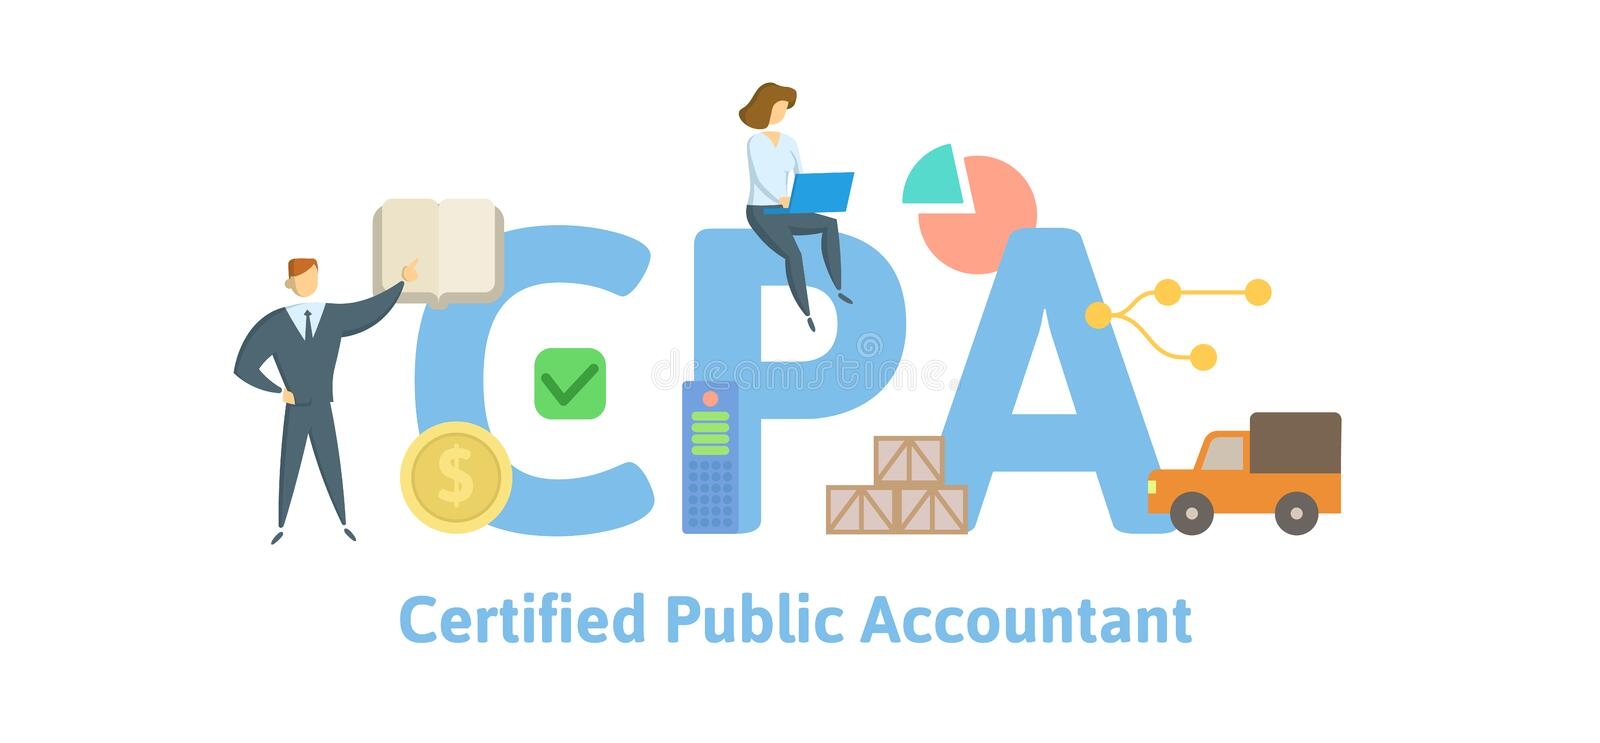 CPA, Certified Public Accountant. Concept with keywords, letters and icons. Flat vector illustration. Isolated on white stock illustration